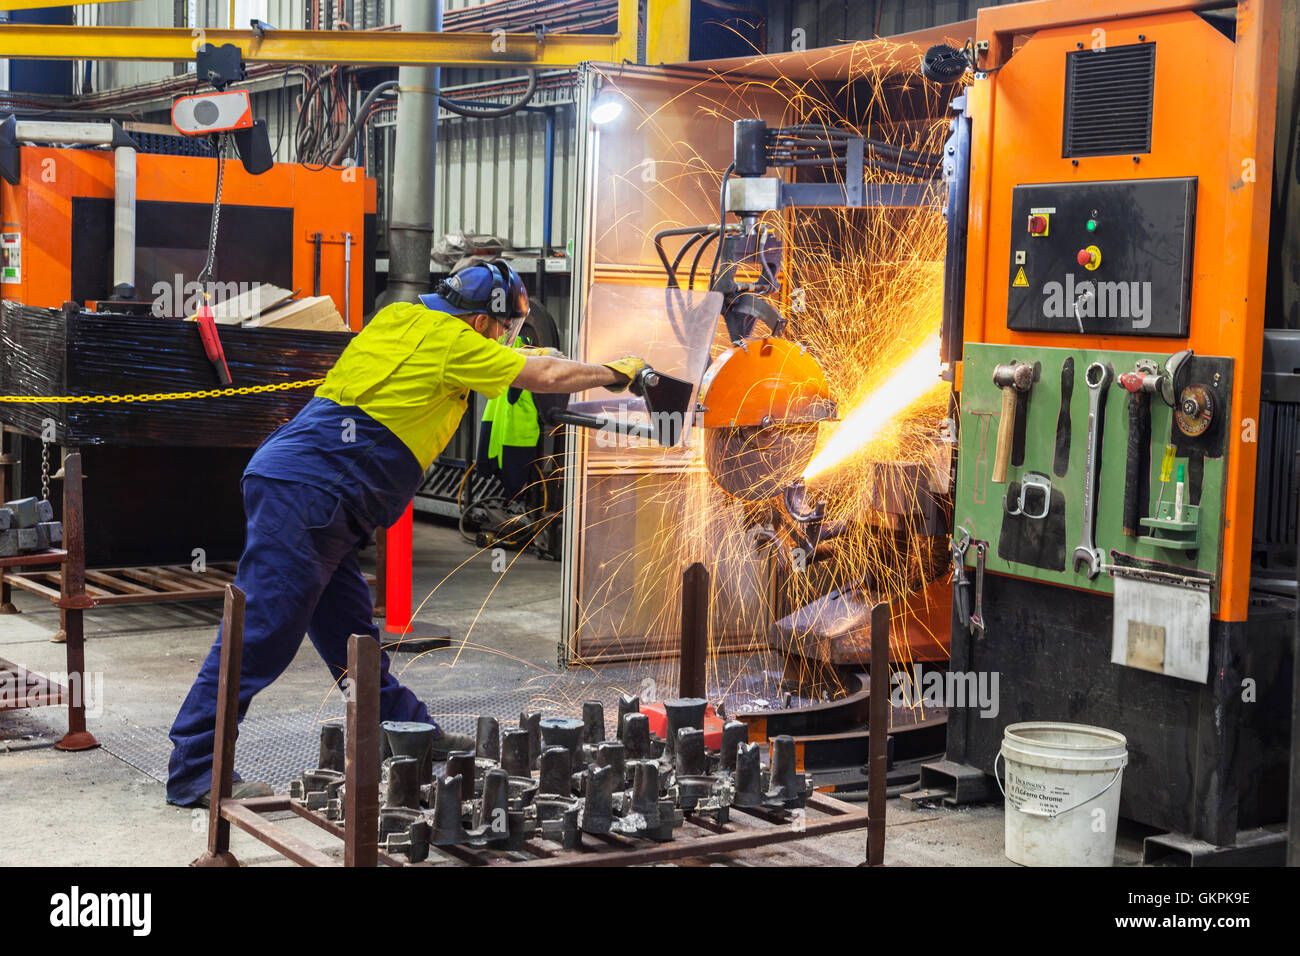 workman grinding and cutting away cast metal components from its 'casting' tree. - Stock Image